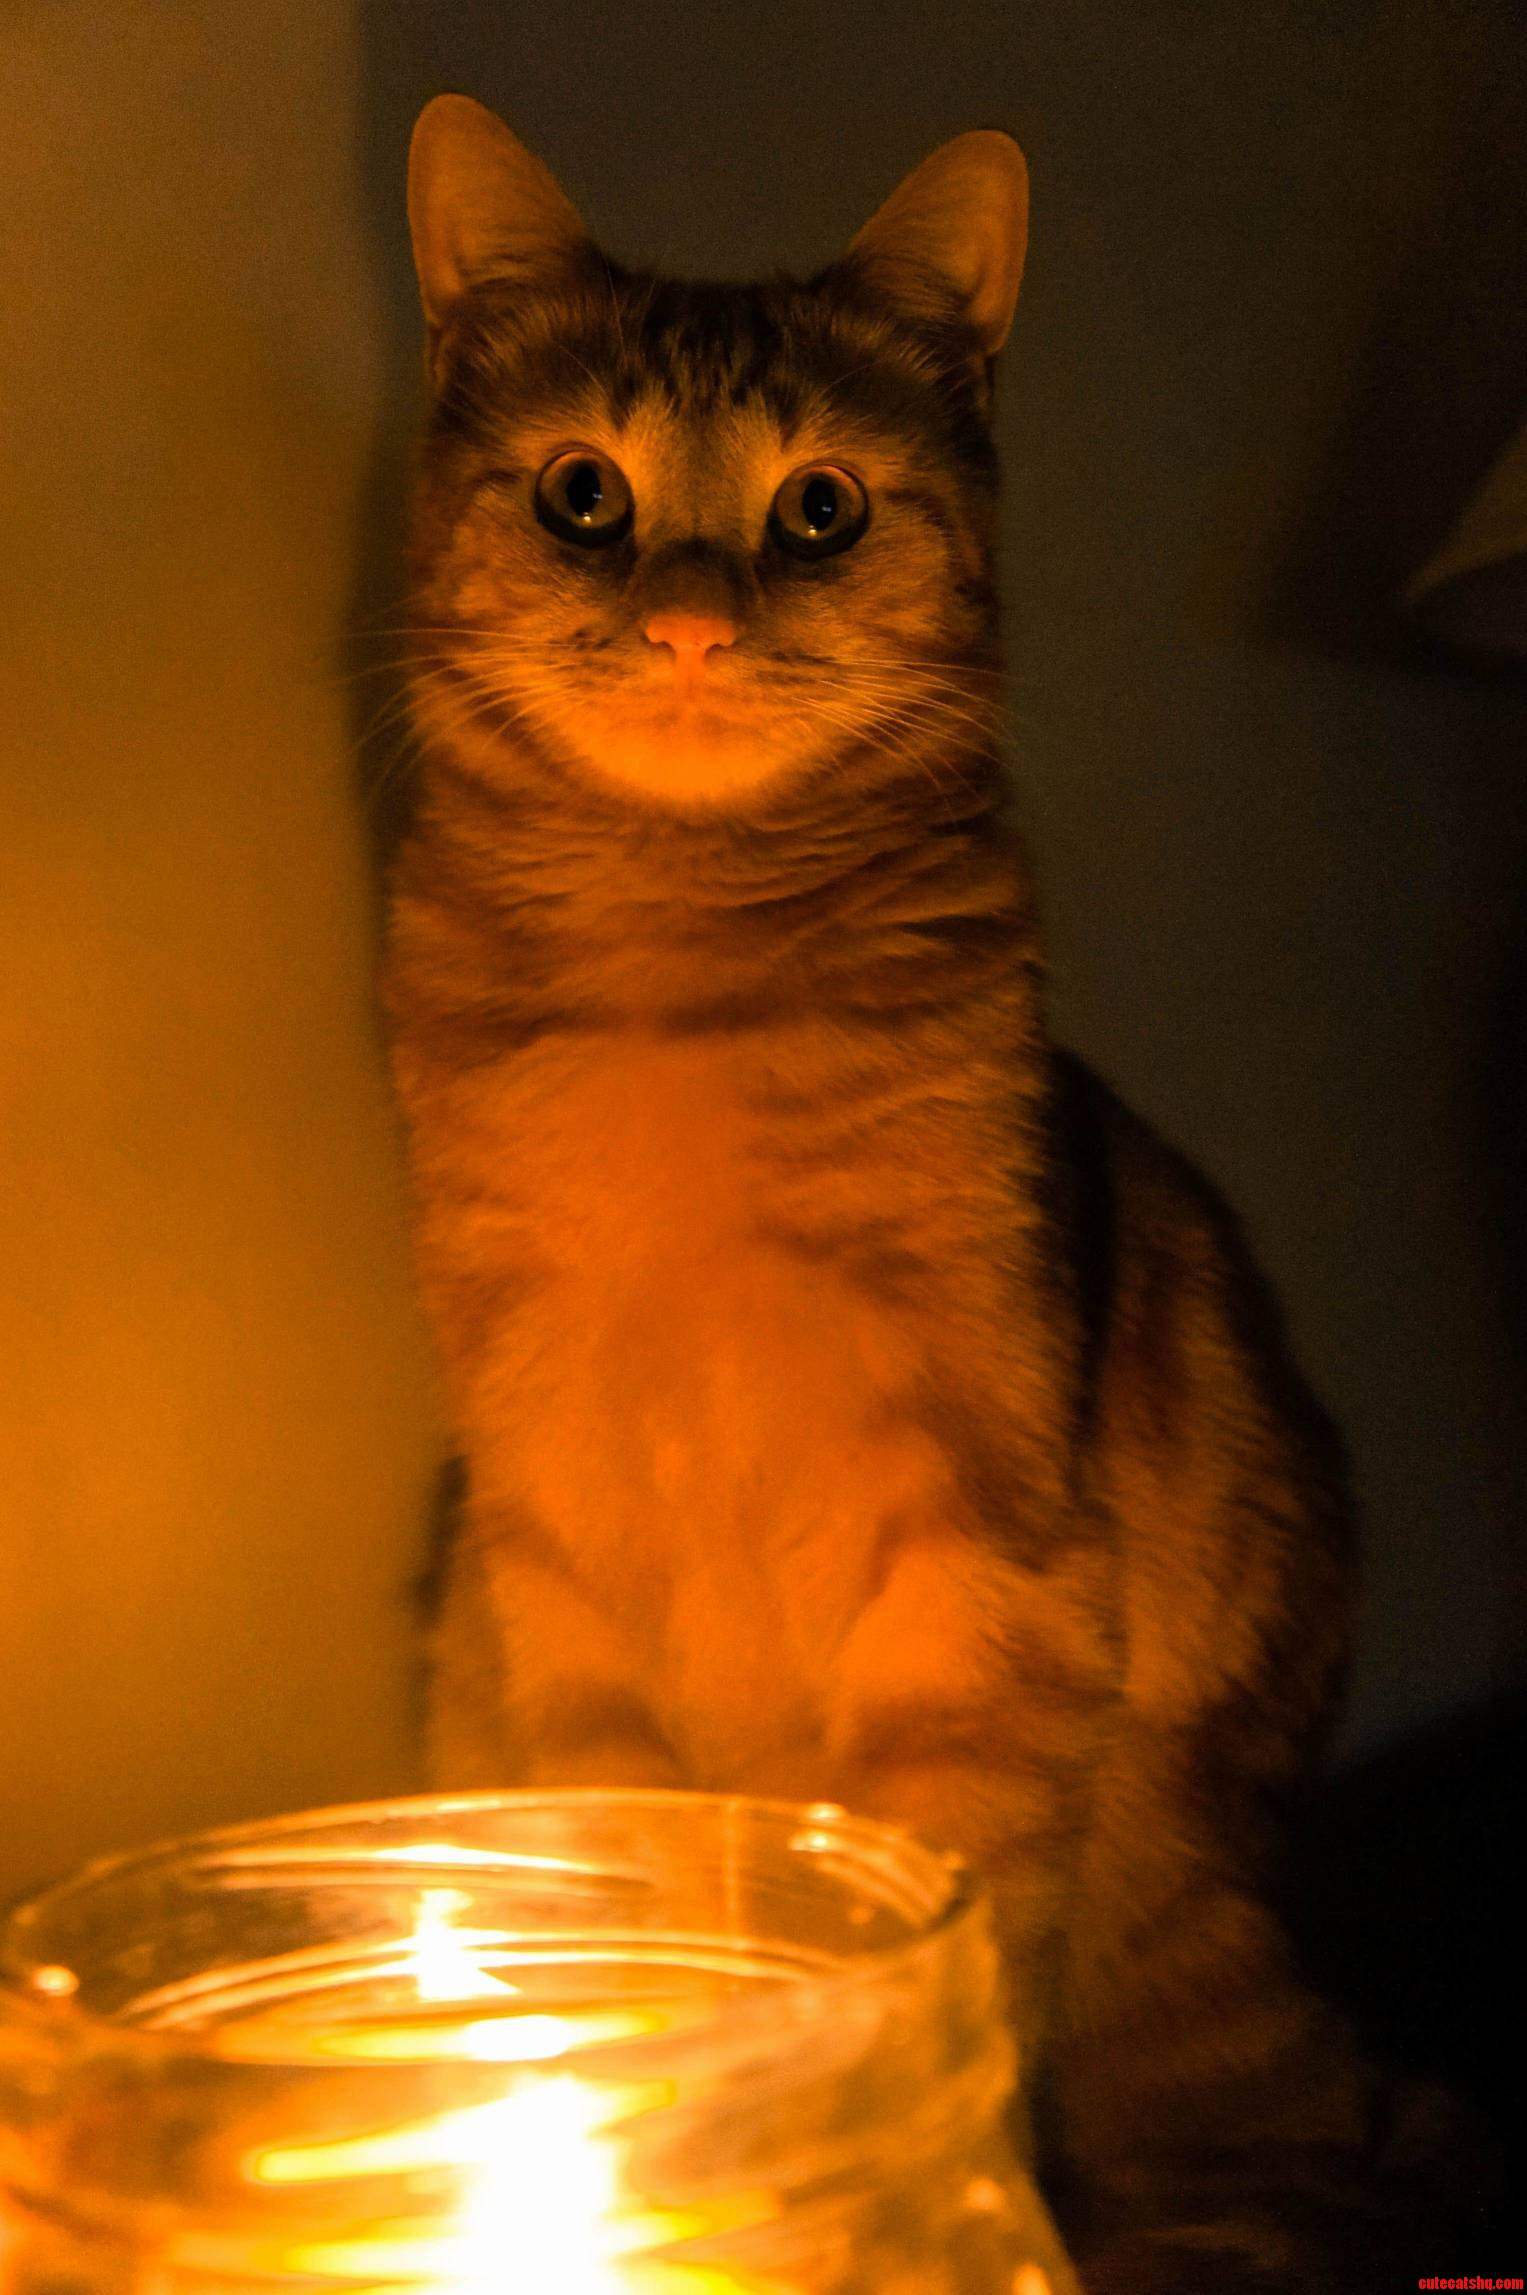 He loves candles even though he has burned his paw and whiskers on one.